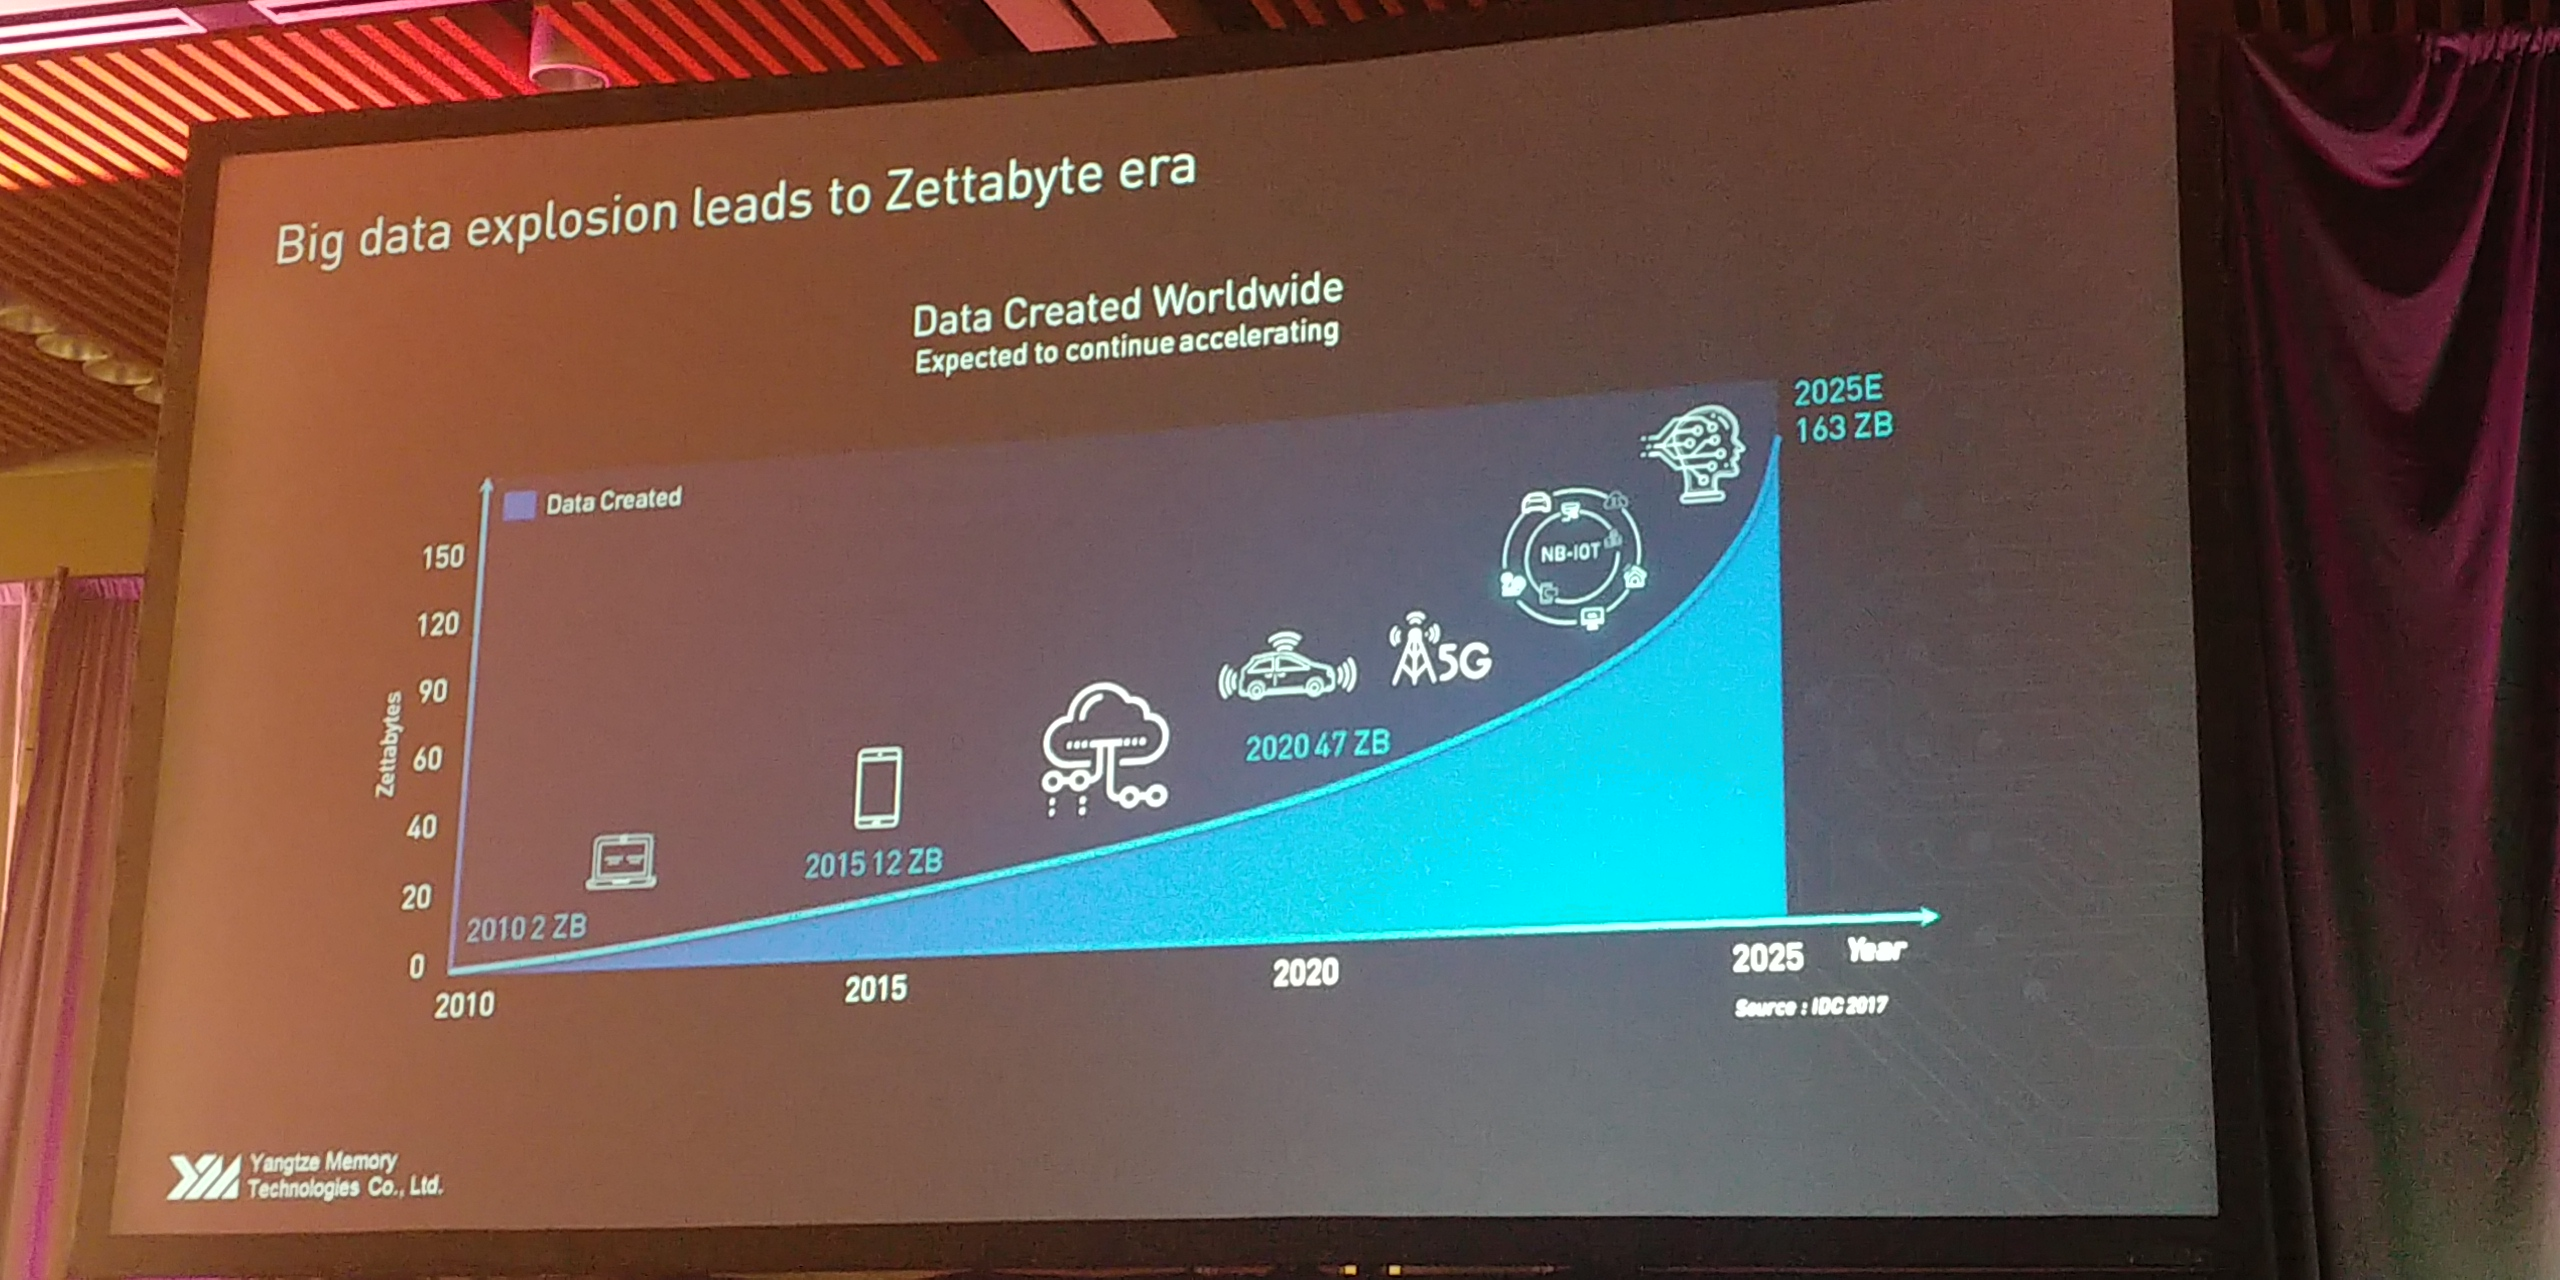 Flash Memory Summit 2018 Yangtze Technology Keynote Live Ultra Compact Devices Parallel 0606pm Edt Expected 163 Zb Big Data Explosion By 20205